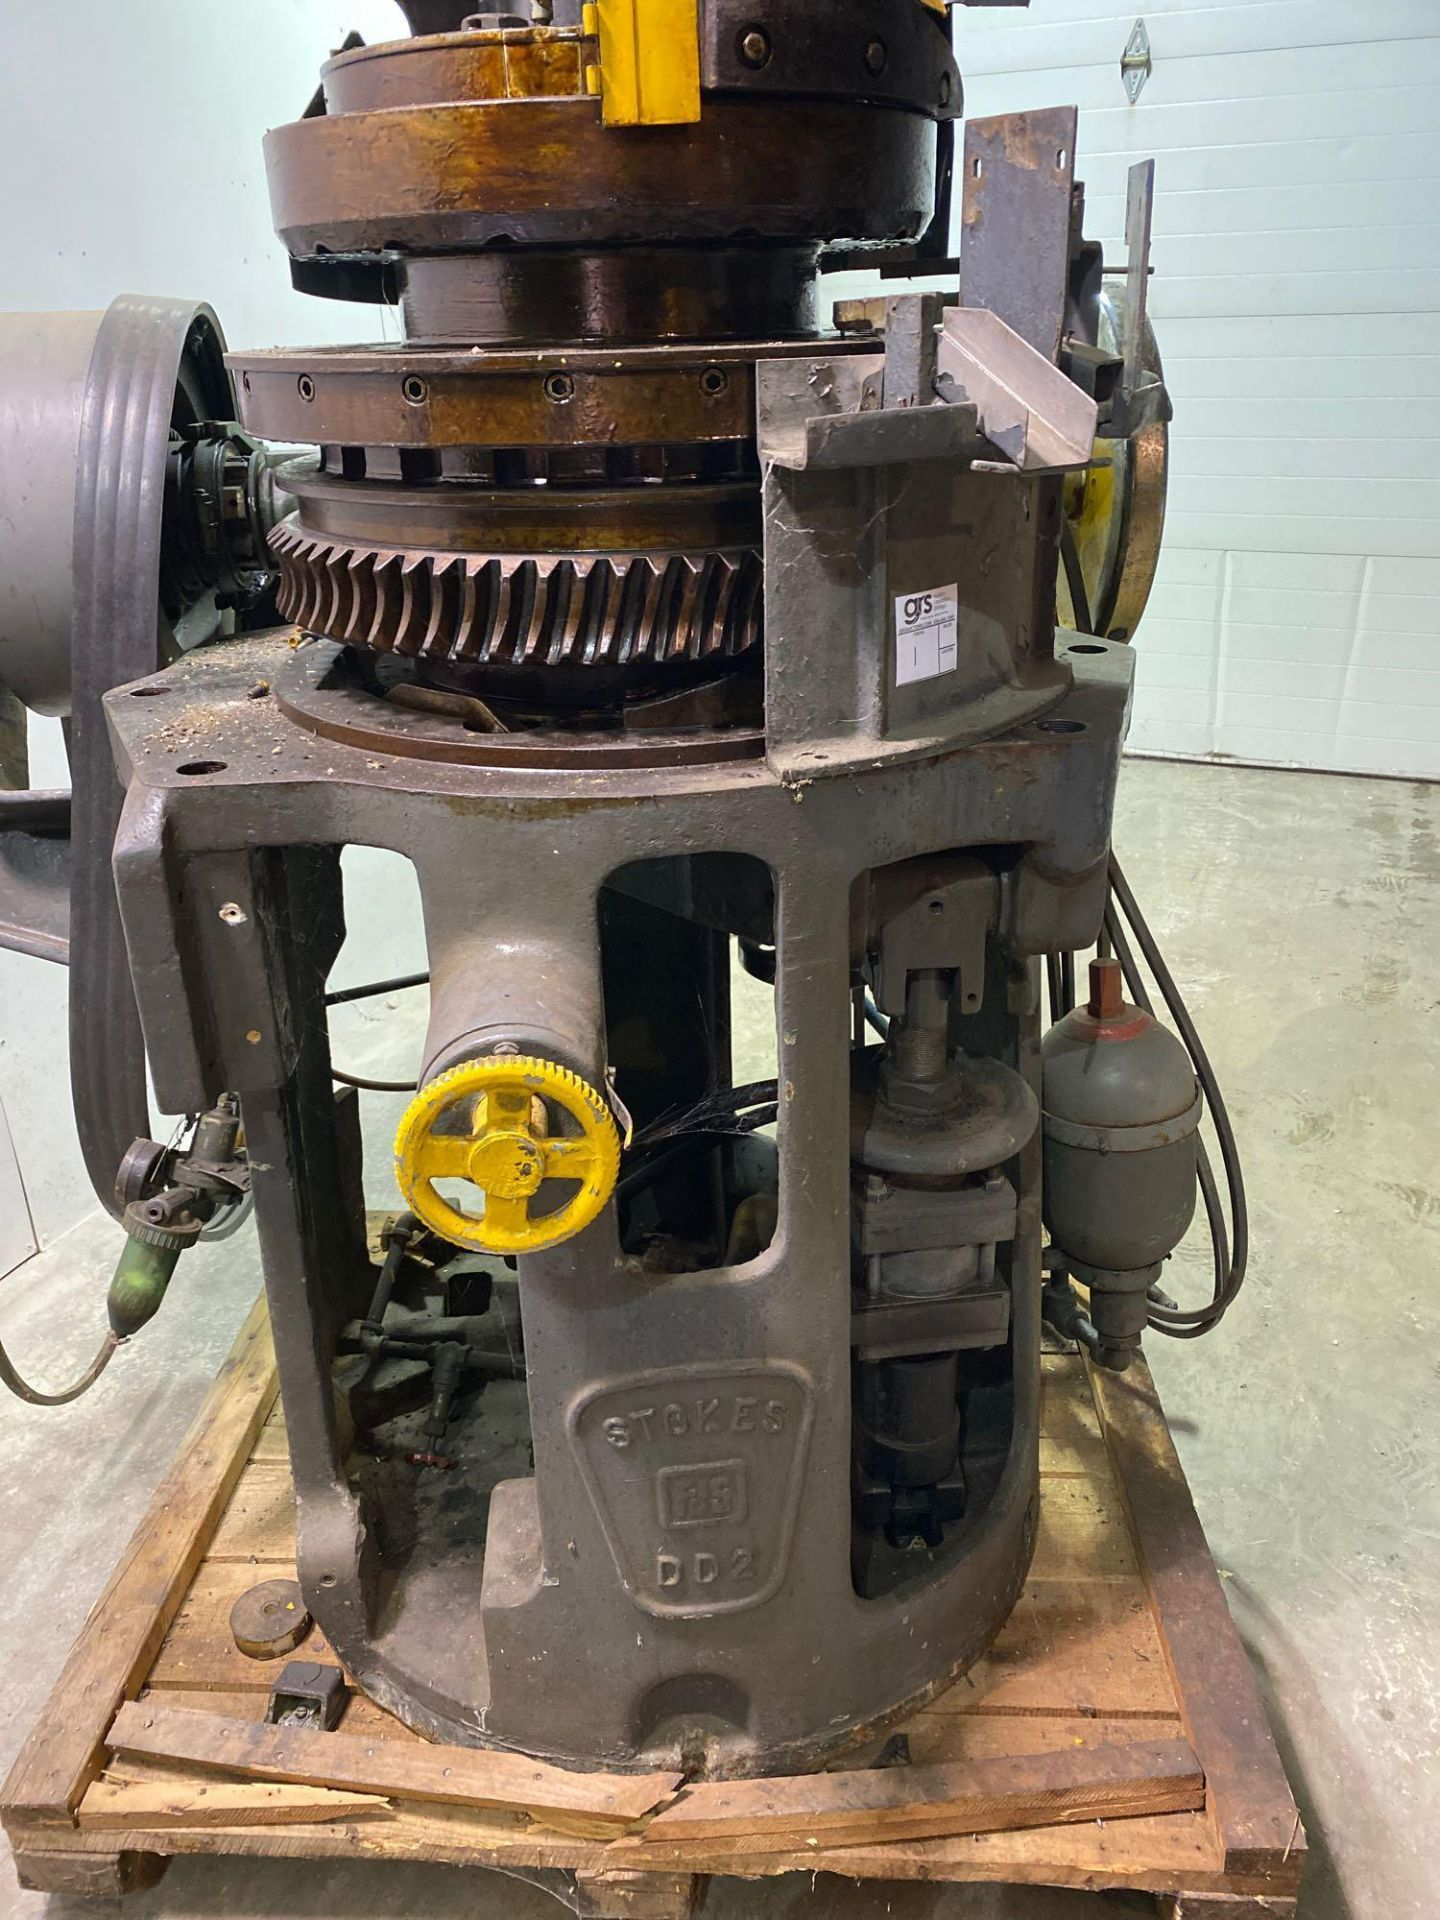 Stokes DD2 19 Station Tablet Press - Image 5 of 12